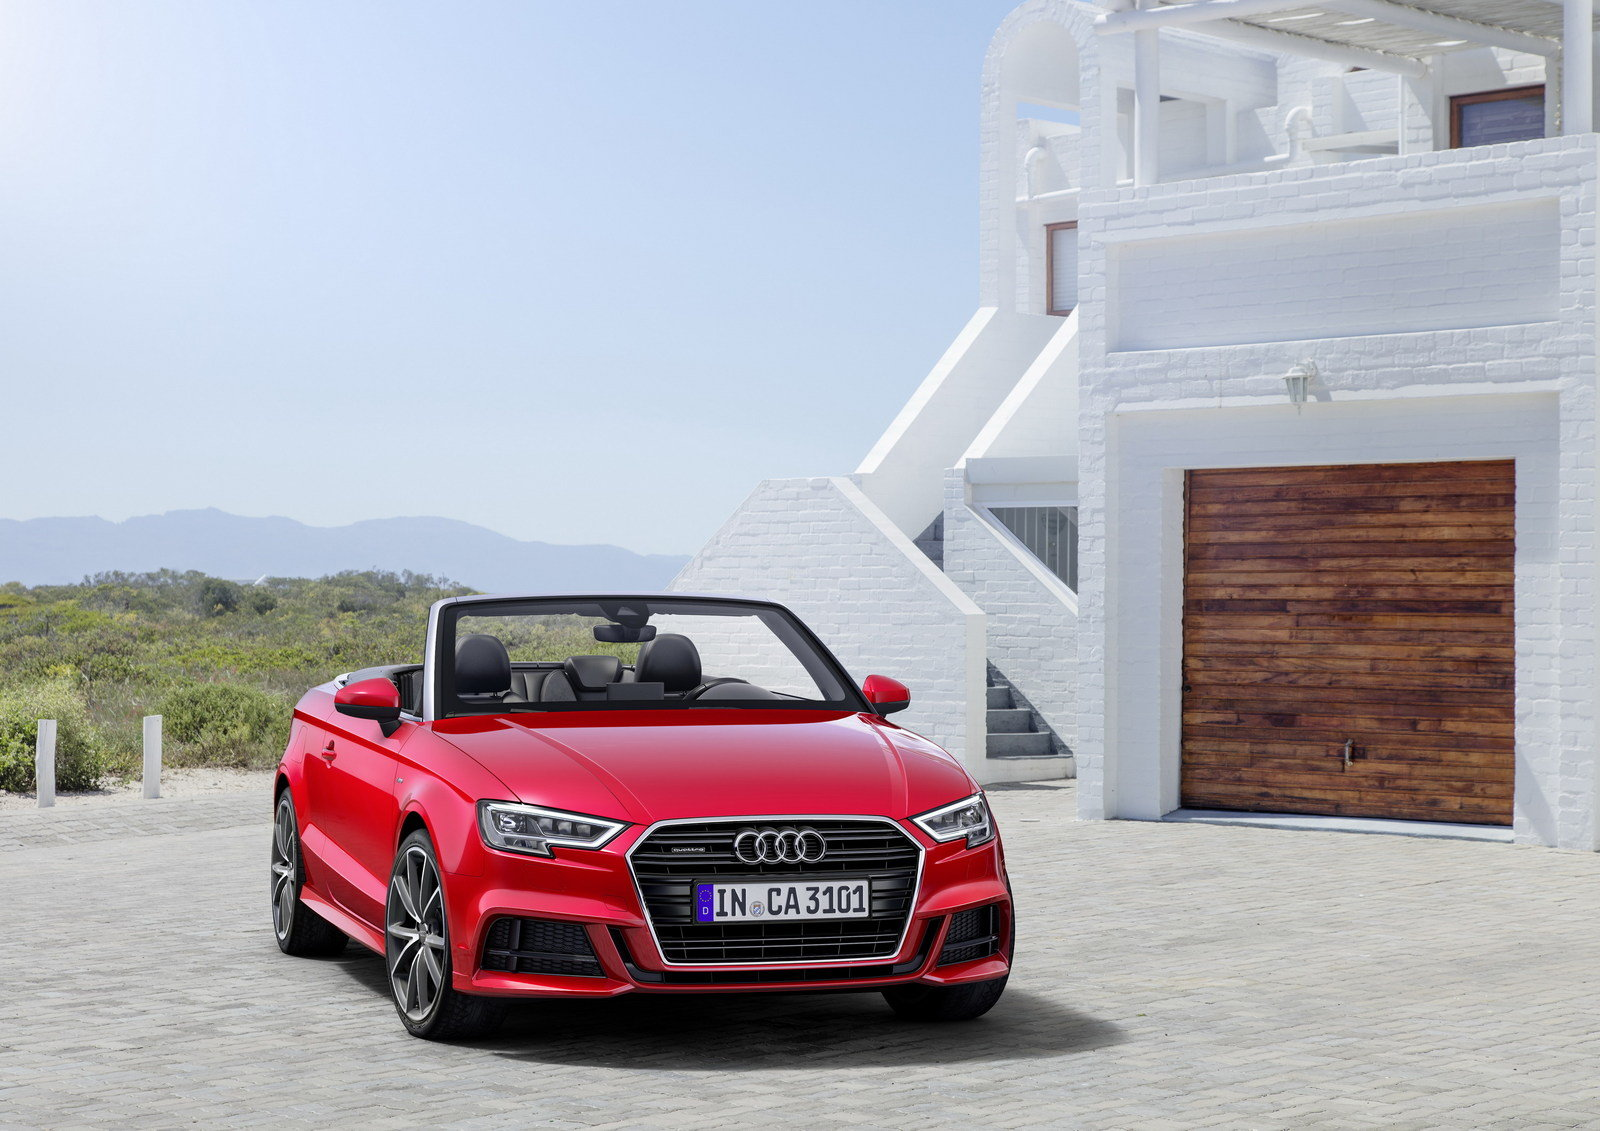 2017 audi a3 convertible picture 671805 car review top speed. Black Bedroom Furniture Sets. Home Design Ideas